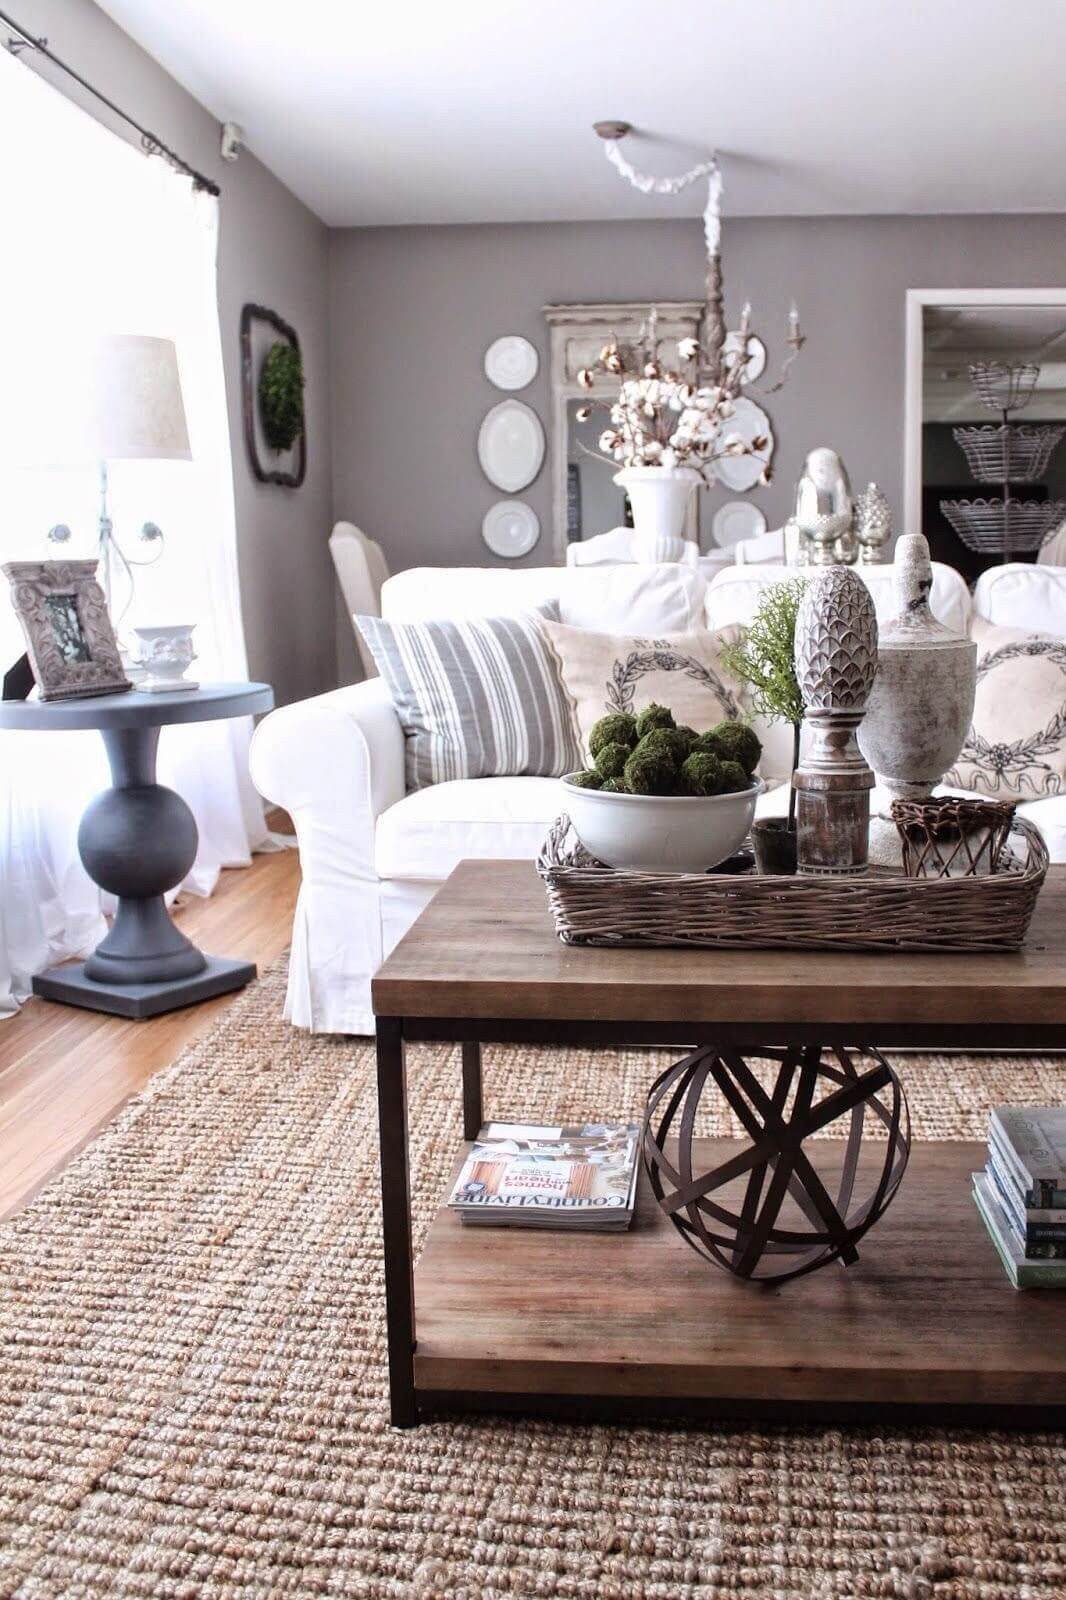 Table Decor for Living Room Inspirational 37 Best Coffee Table Decorating Ideas and Designs for 2019